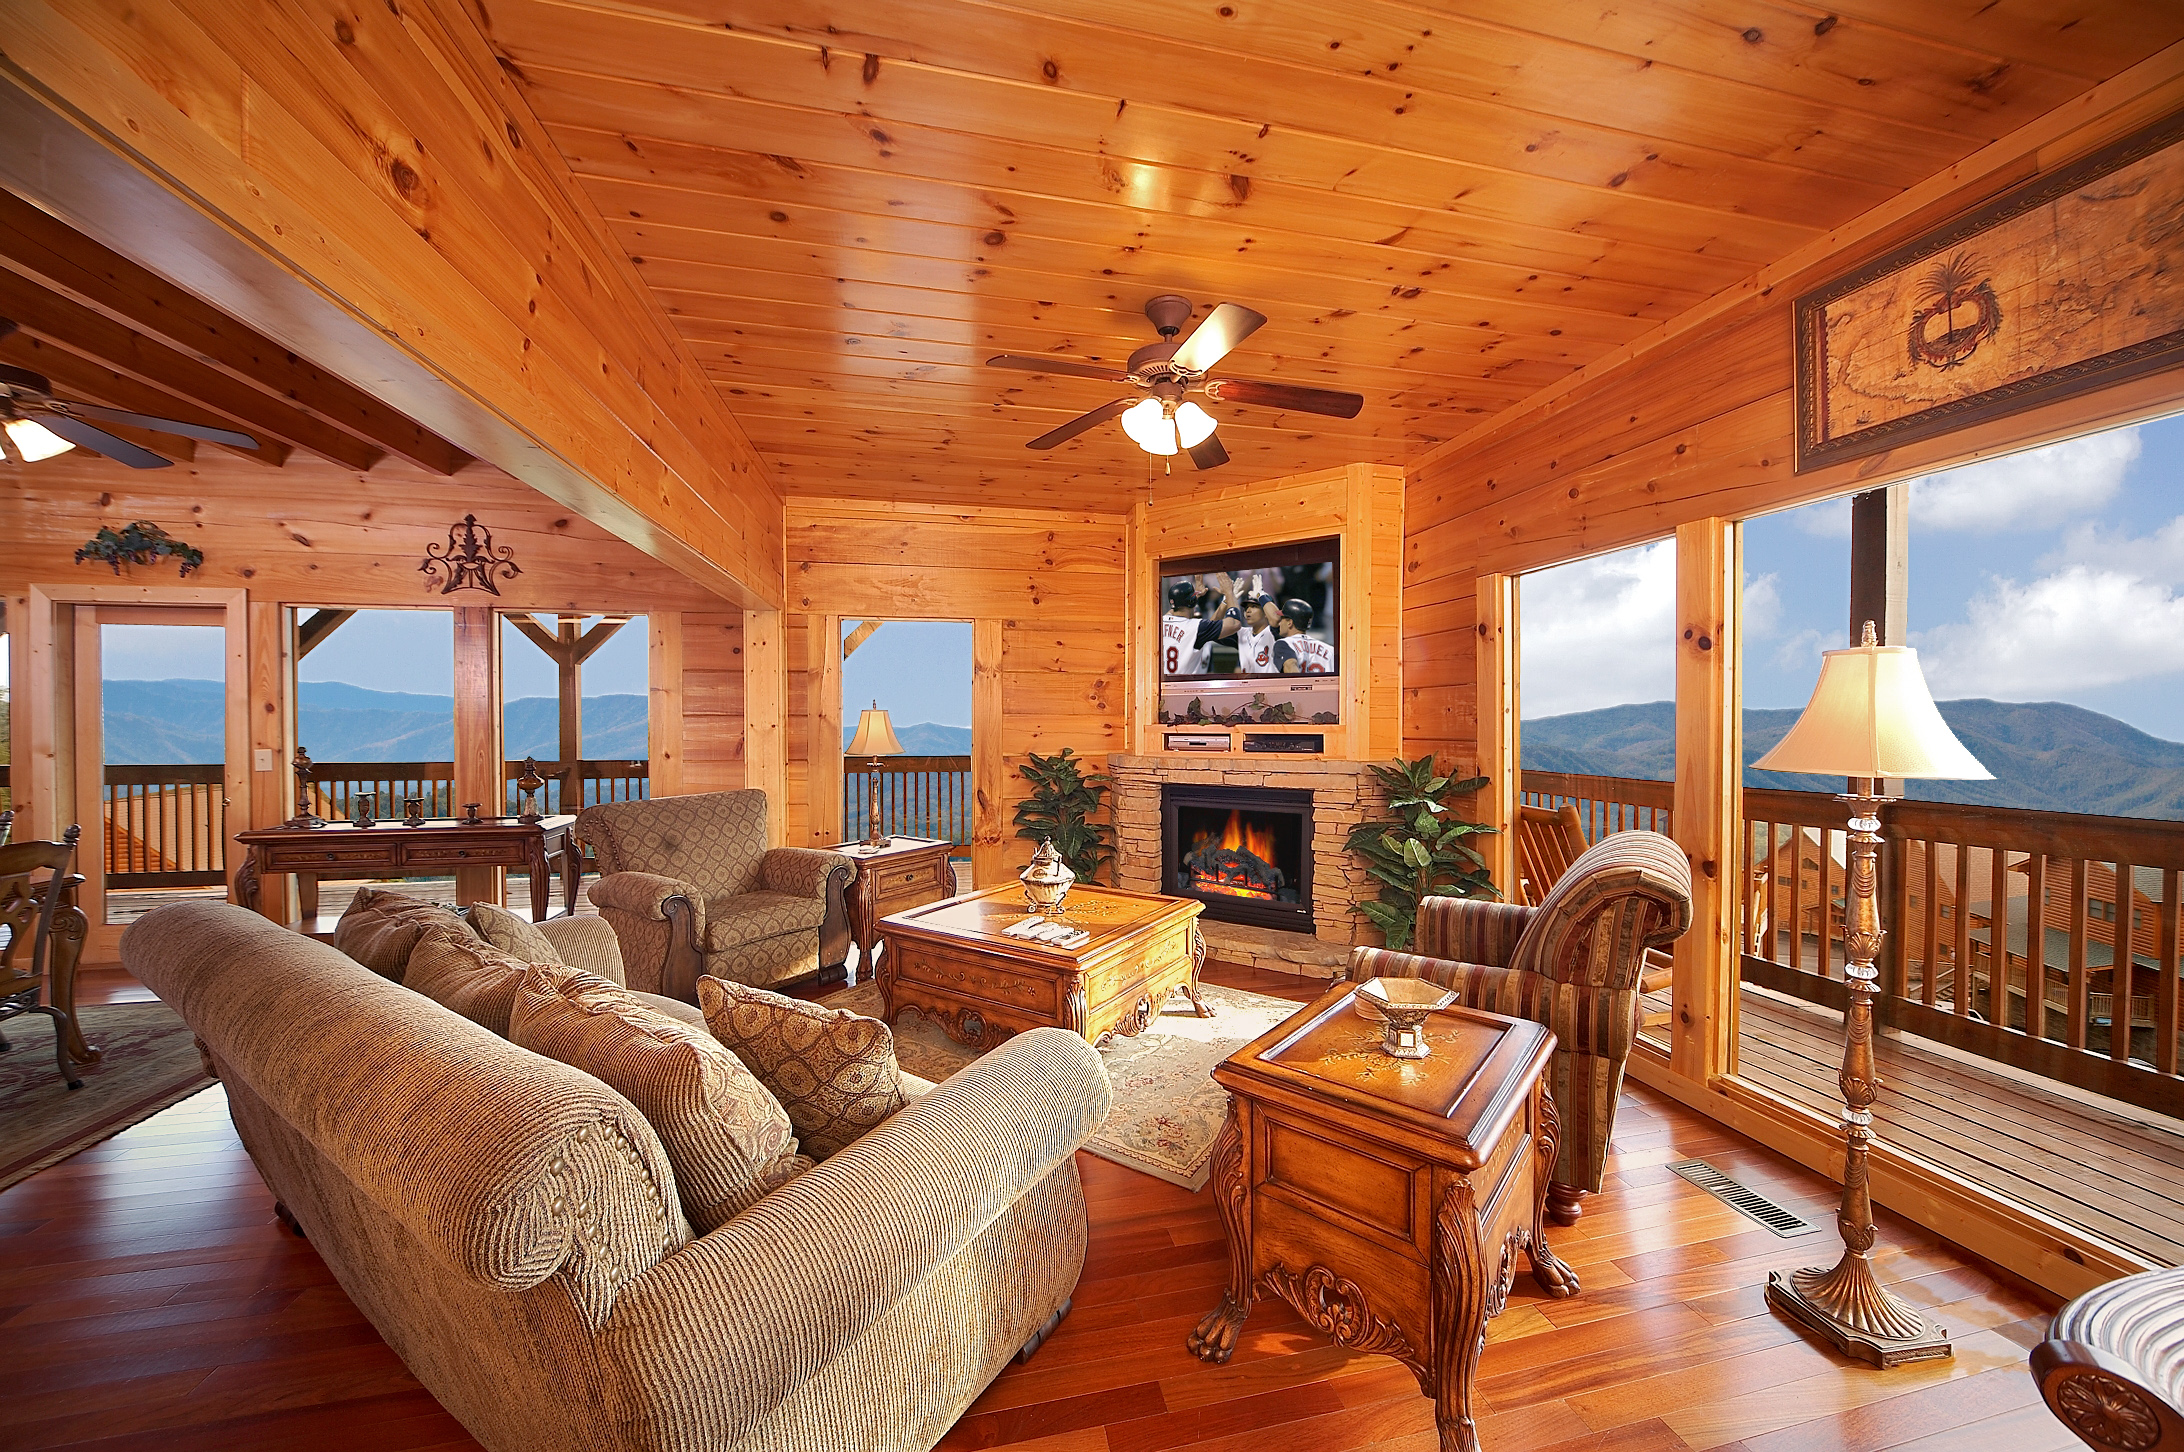 Luxury cabin rentals in the smoky mountains for Large cabin rentals in tennessee